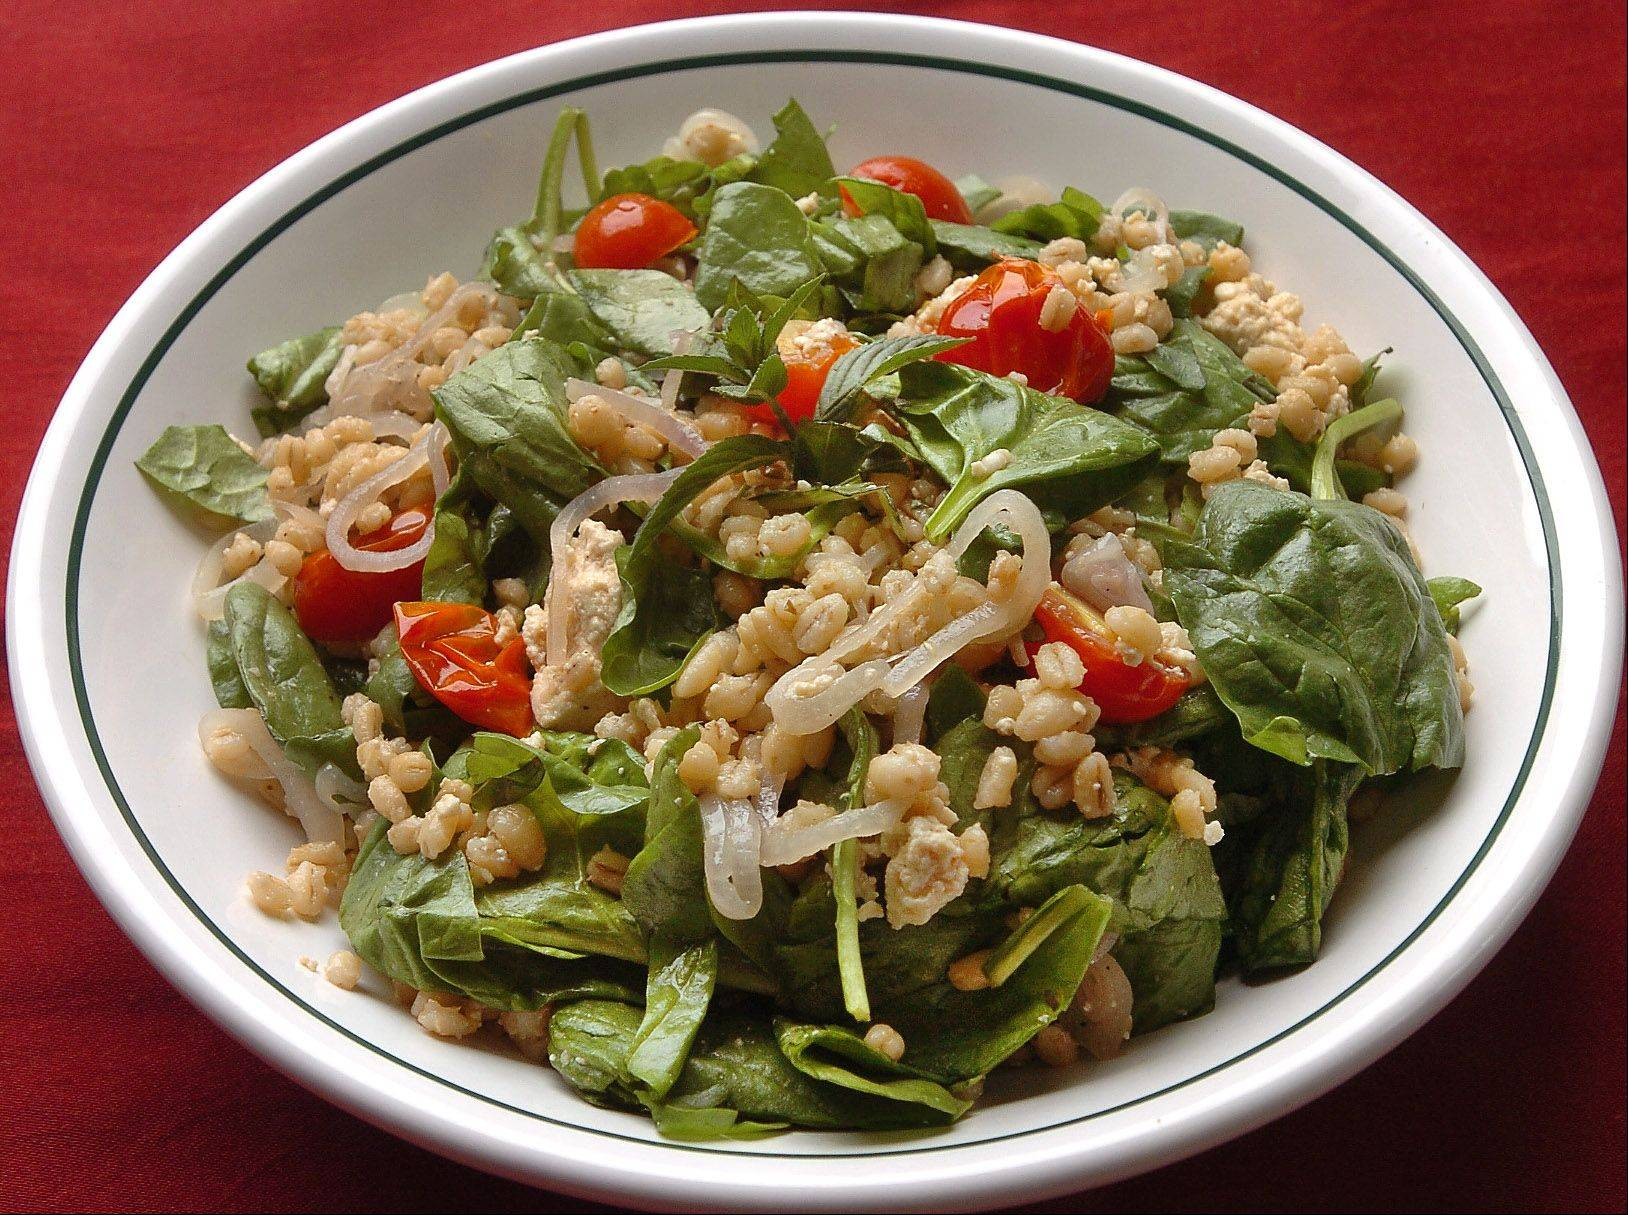 Barley and Spinach Salad